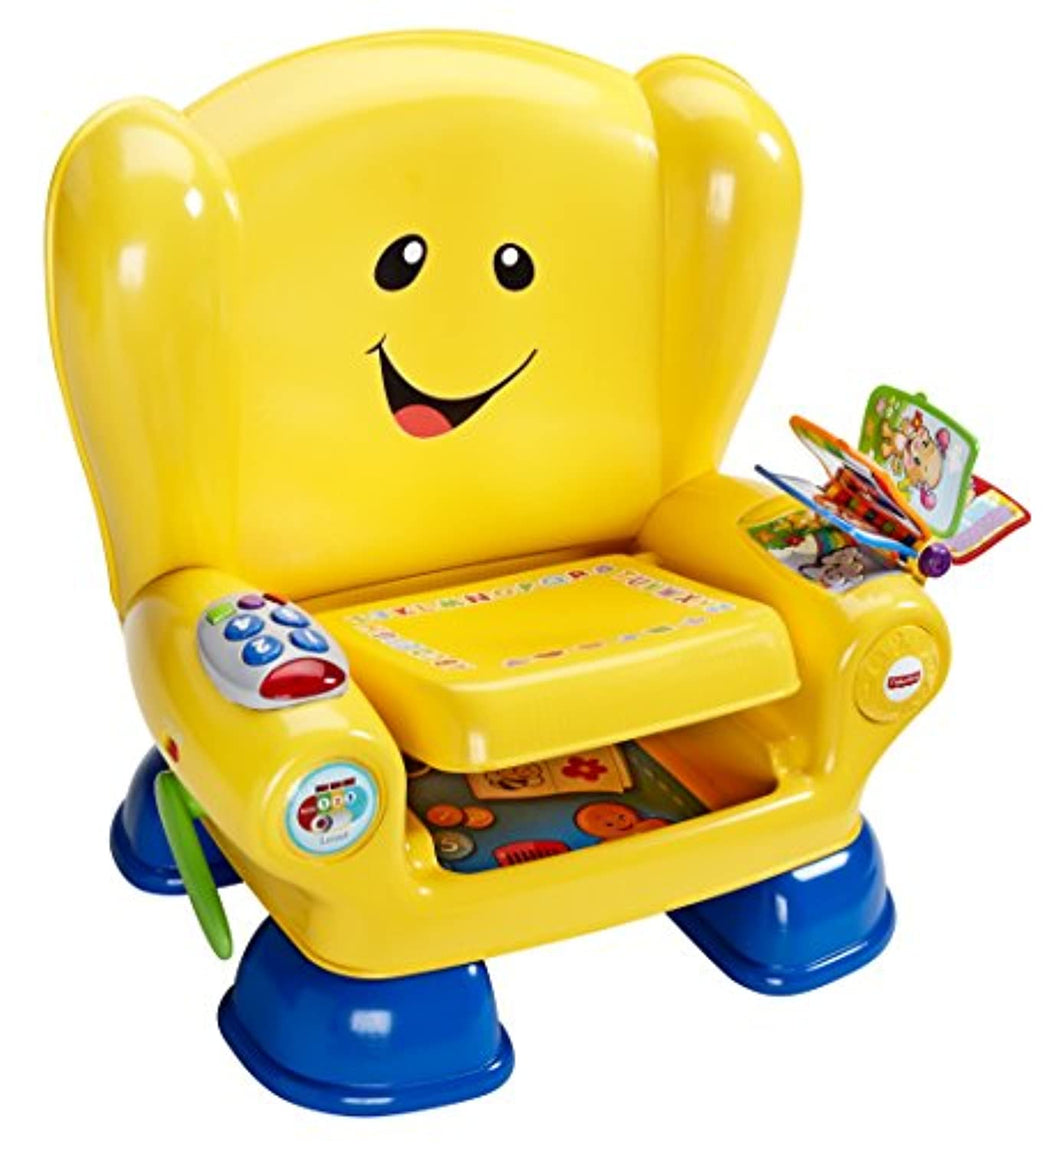 Fisher-Price Smart Stages Chair, Educational Toddler Activity Chair Toy with Sounds, Music and Phrases, Suitable for 1 Year Old - iBuy Africa